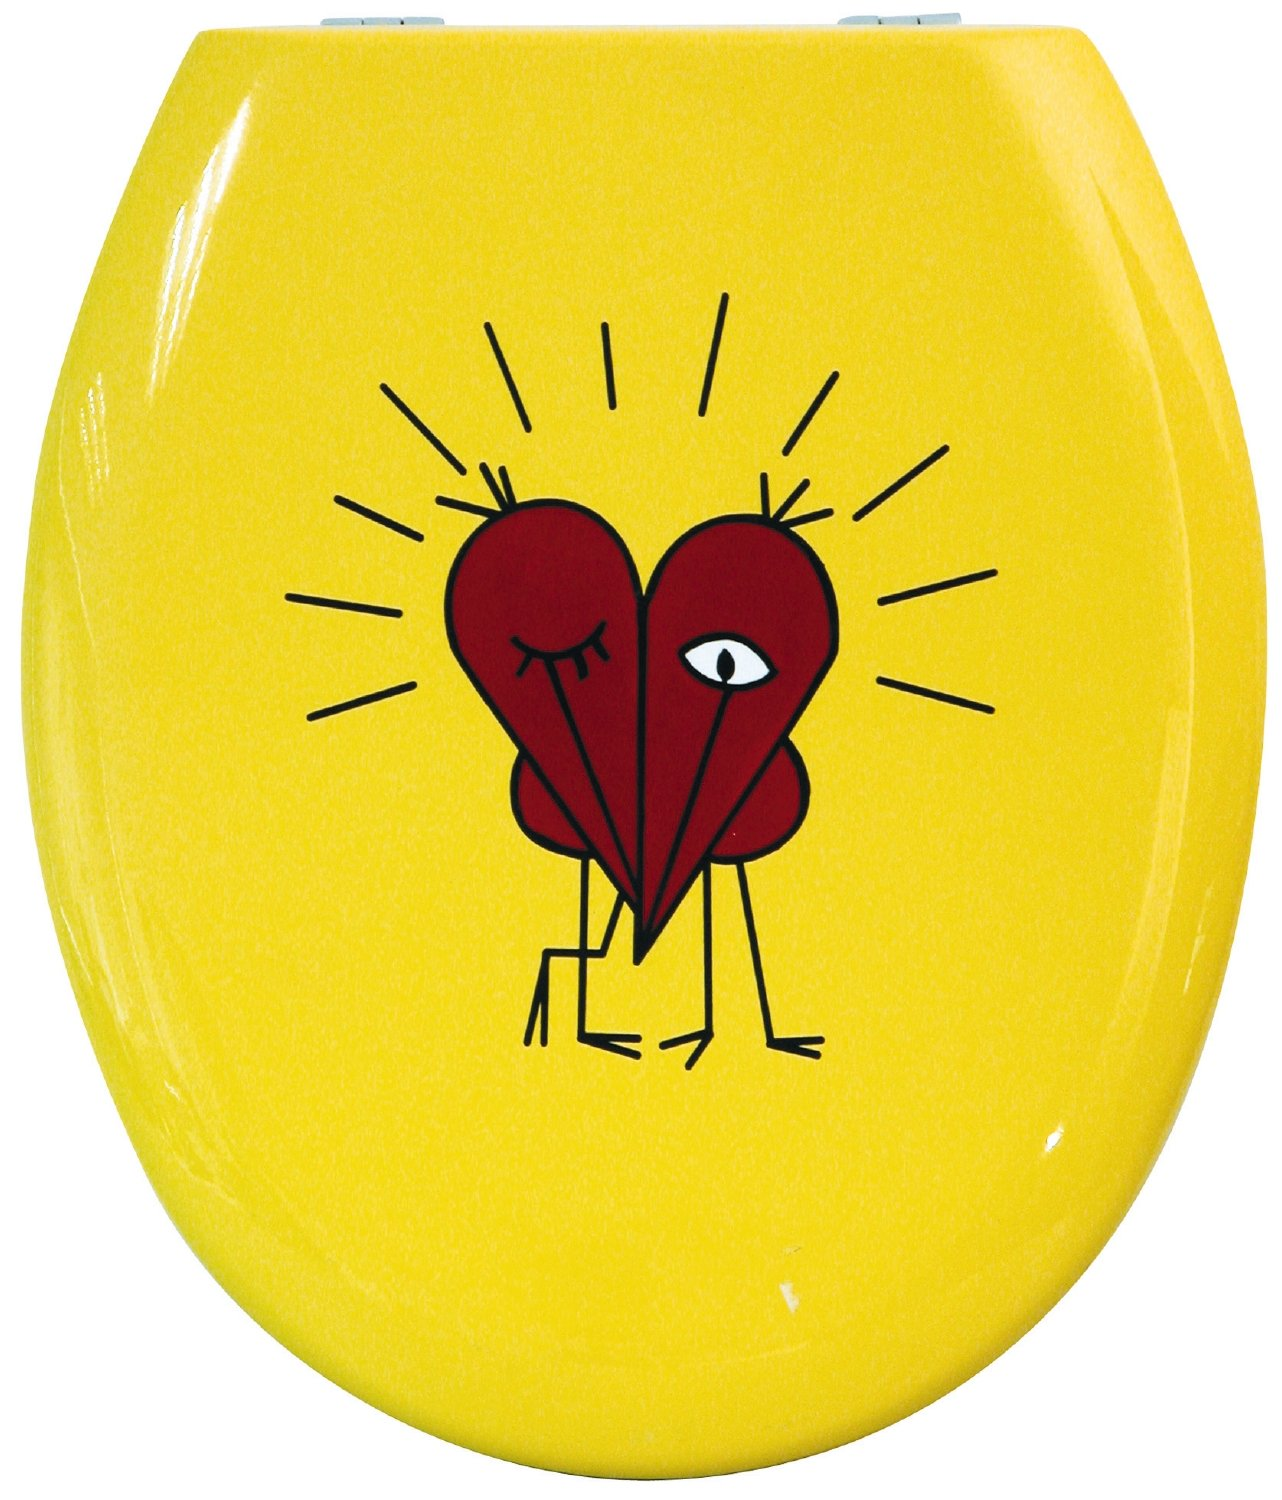 Bemis Gallery Collection Love Birds, Voegel Rot Toilet Seat by Bemis